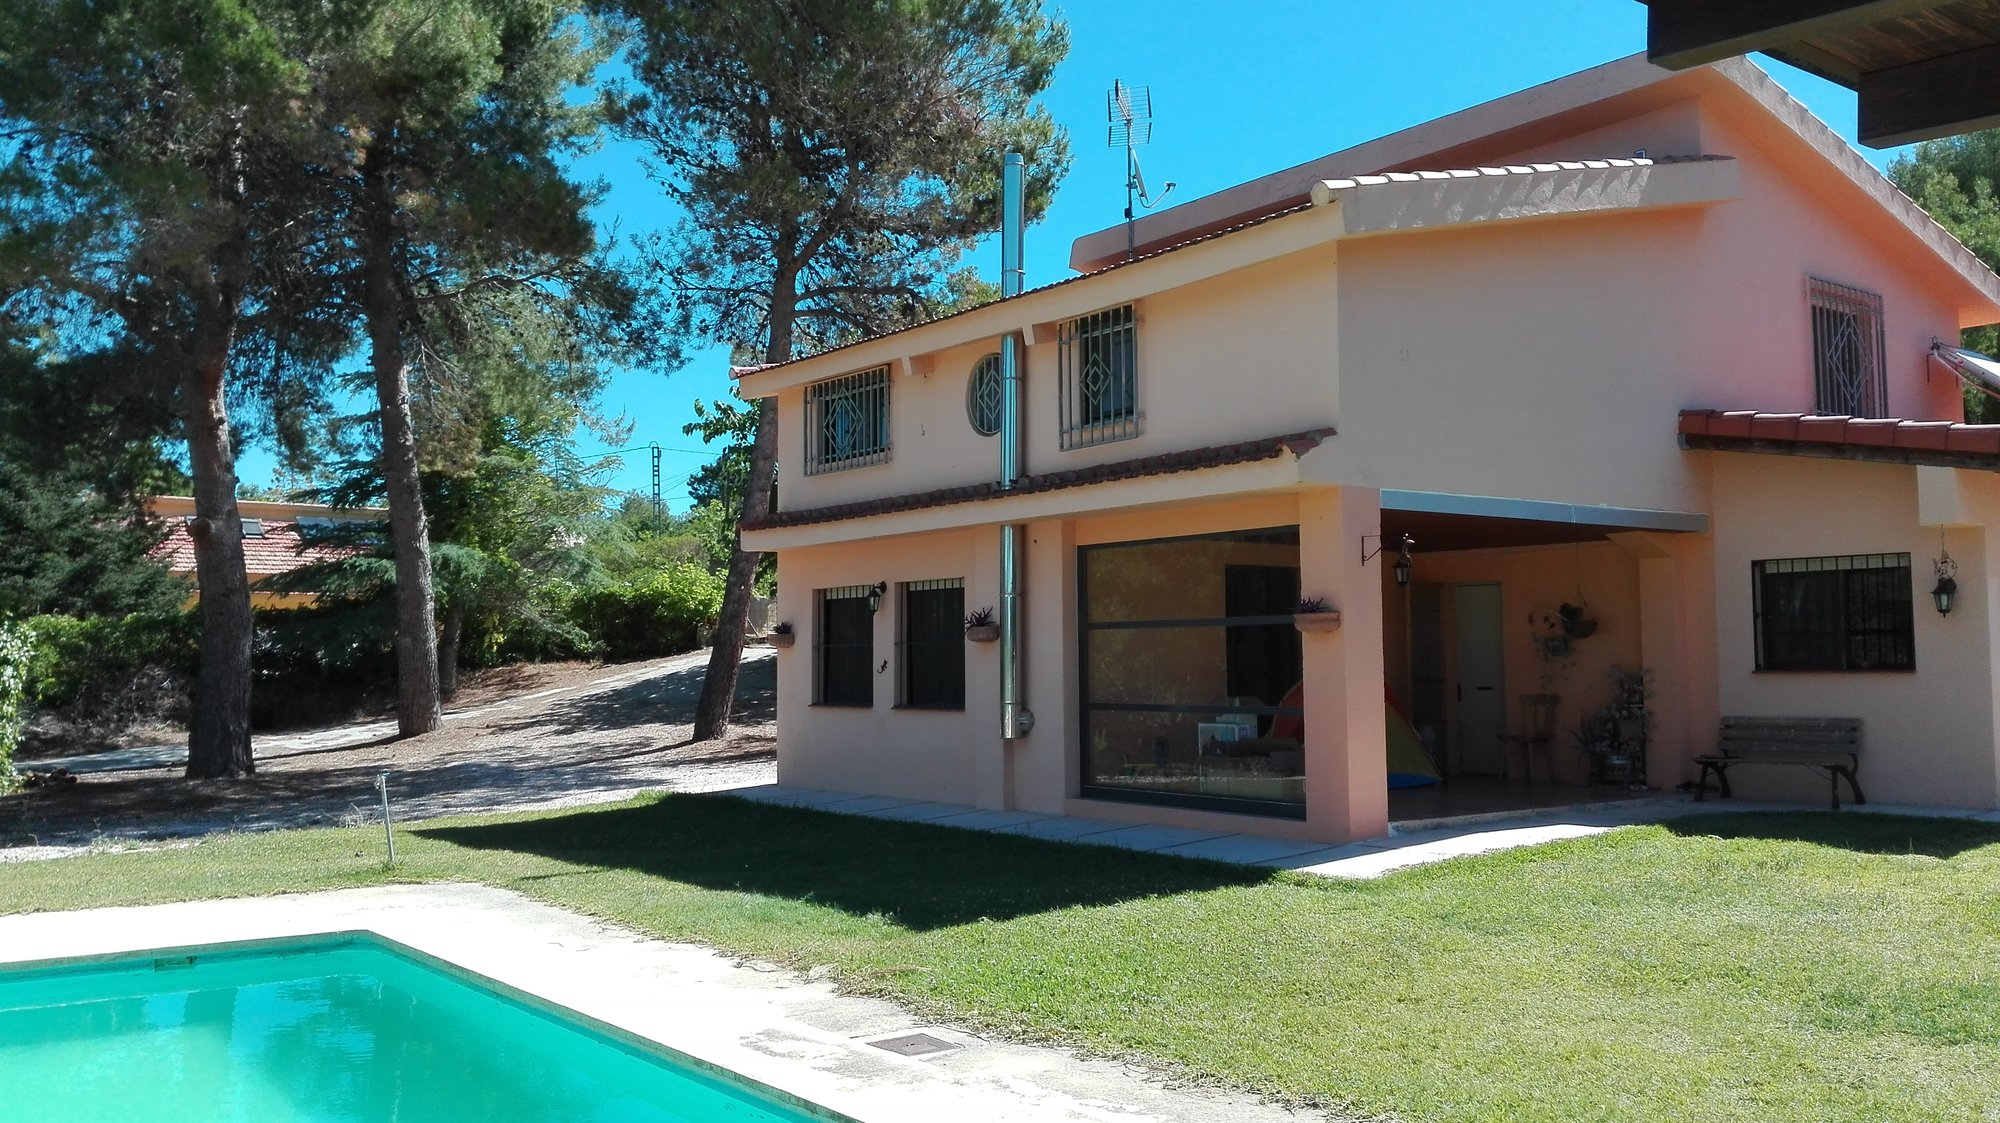 Ref:A15285 Villa For Sale in ALCOY